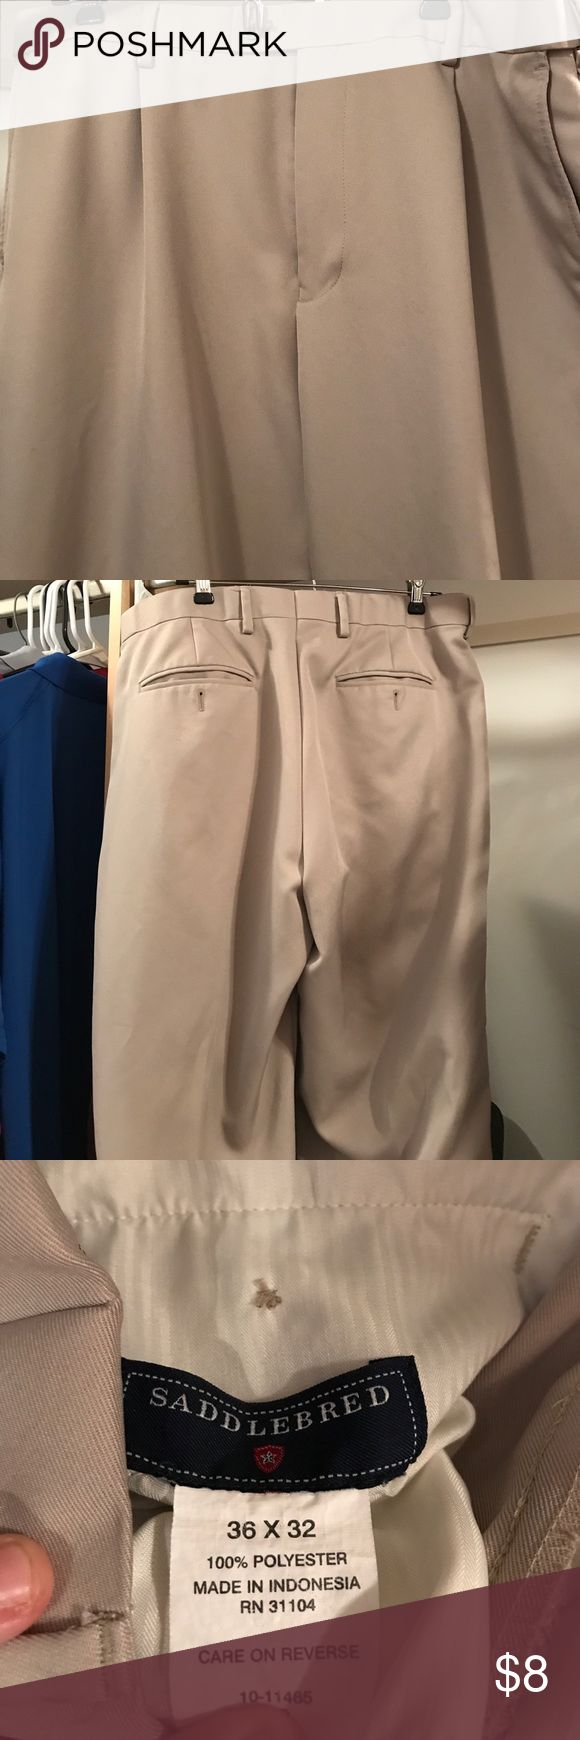 Men's khaki pants Men's khaki dress pants size 36 x 32. There is a small spot on right leg front. Dry cleaning would remove it. Pants Chinos & Khakis